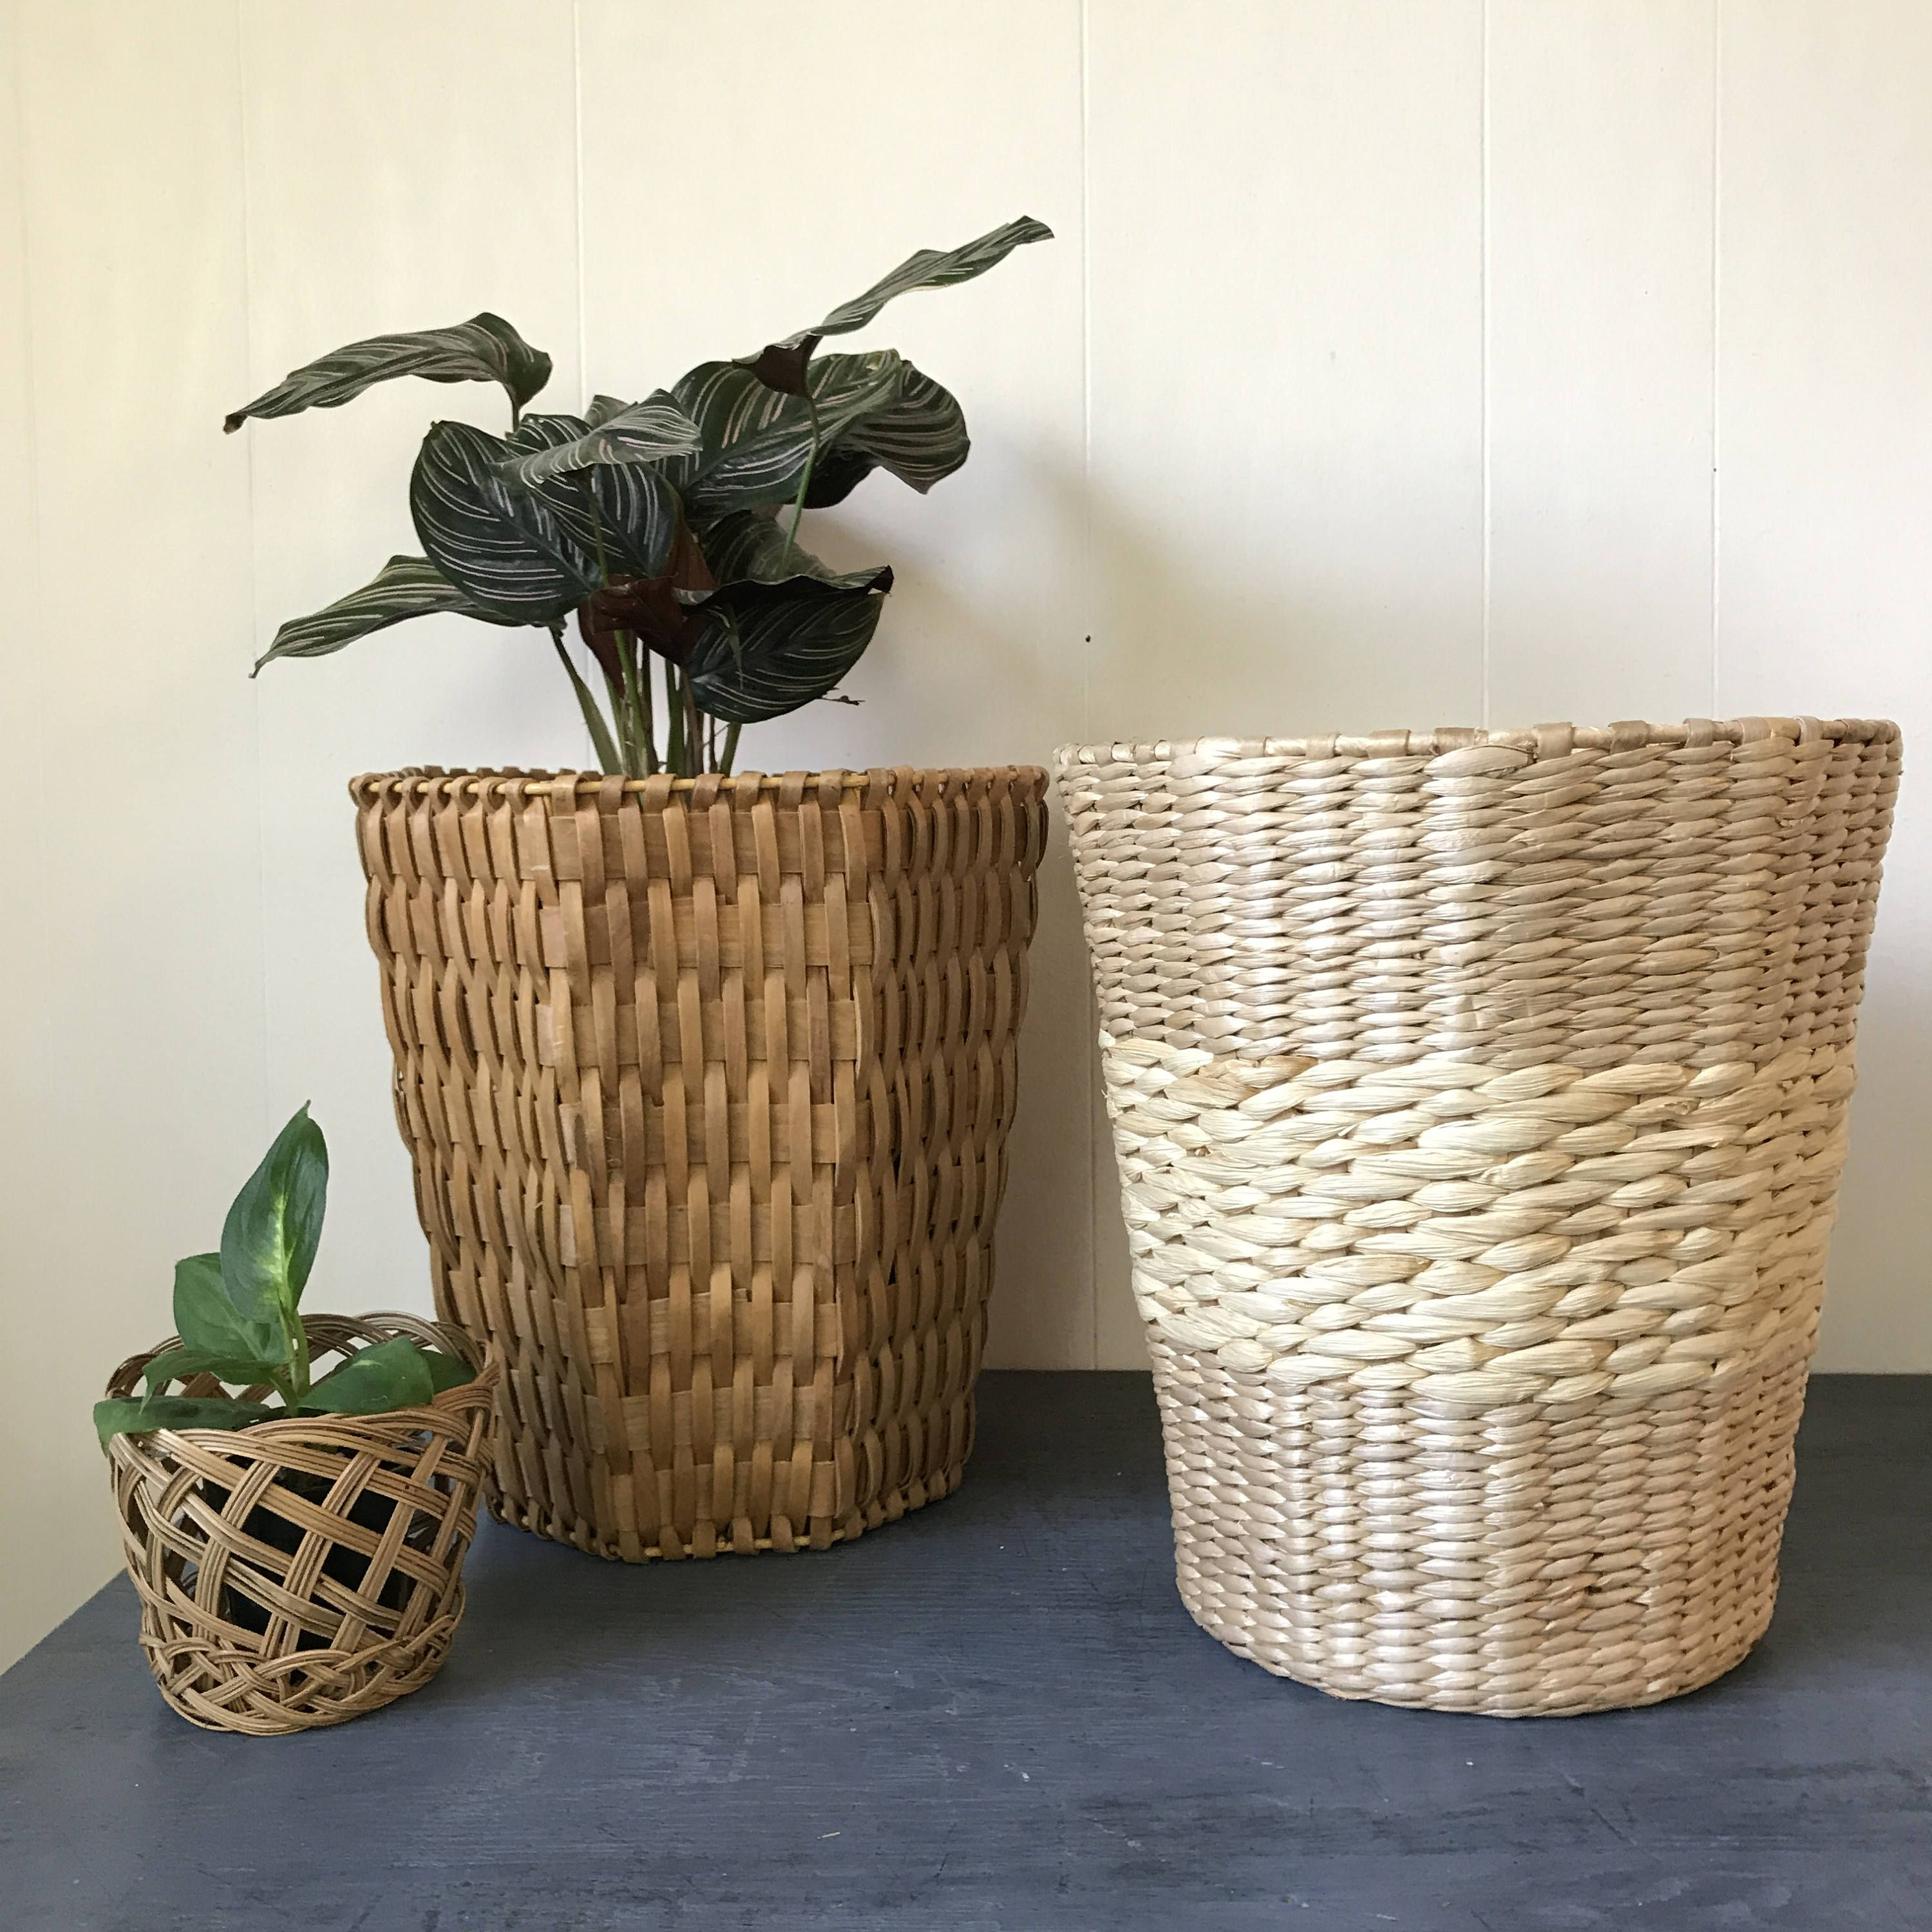 Woven Bamboo Baskets Round Octagon Planter Rattan Raffia Wastepaper Basket Plant Holder Plant Holders Bamboo Basket Wastepaper Basket